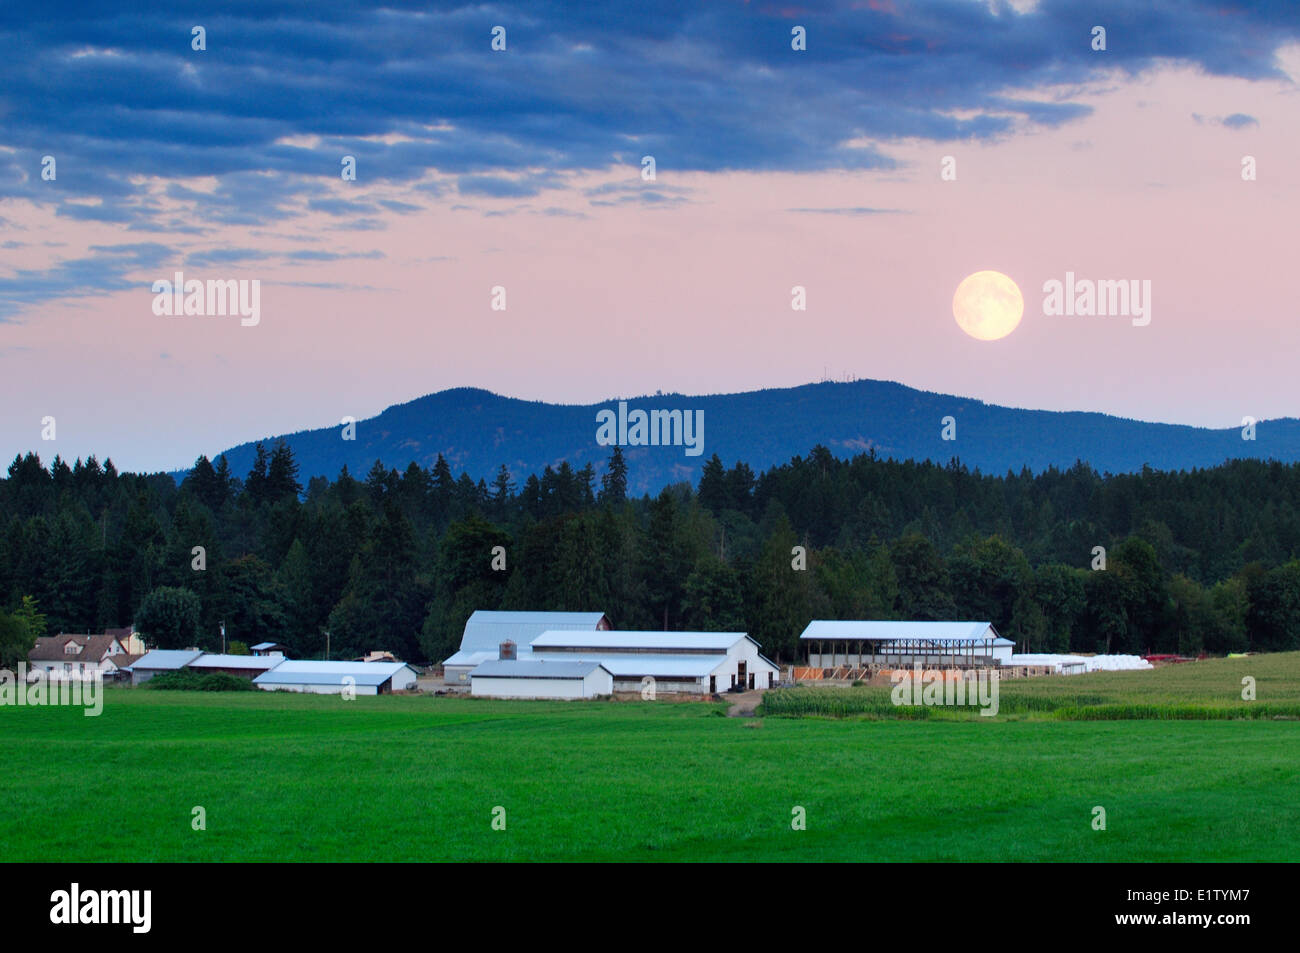 A full moon rises over a farm in Cowichan Station, near Duncan, BC. - Stock Image